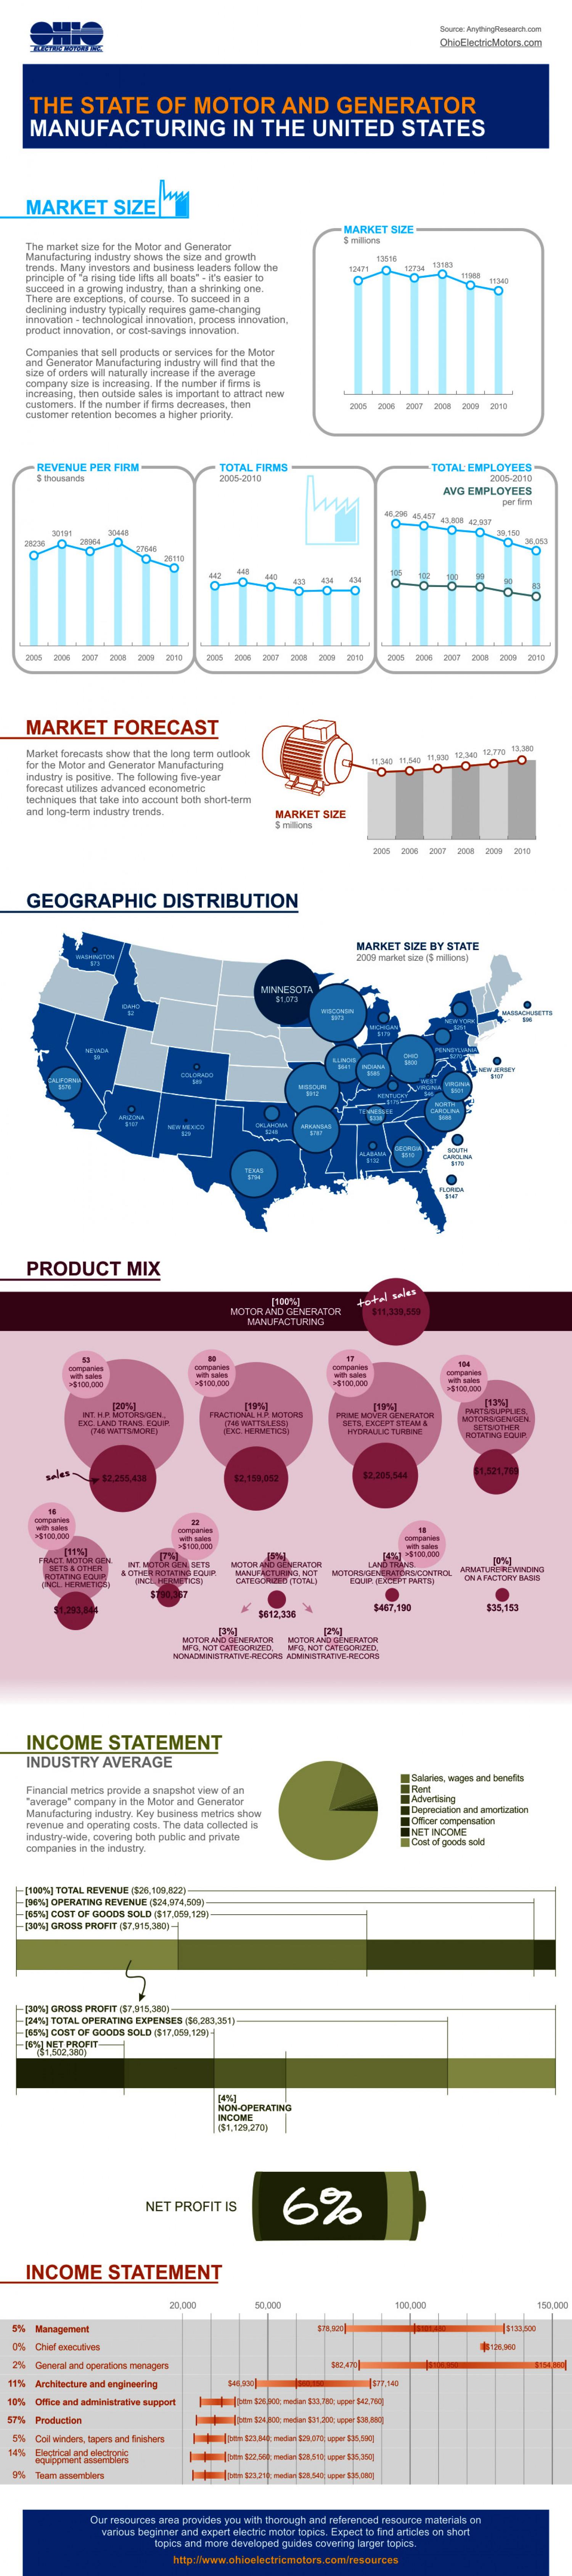 Motor and Generator Manufacturing US Infographic